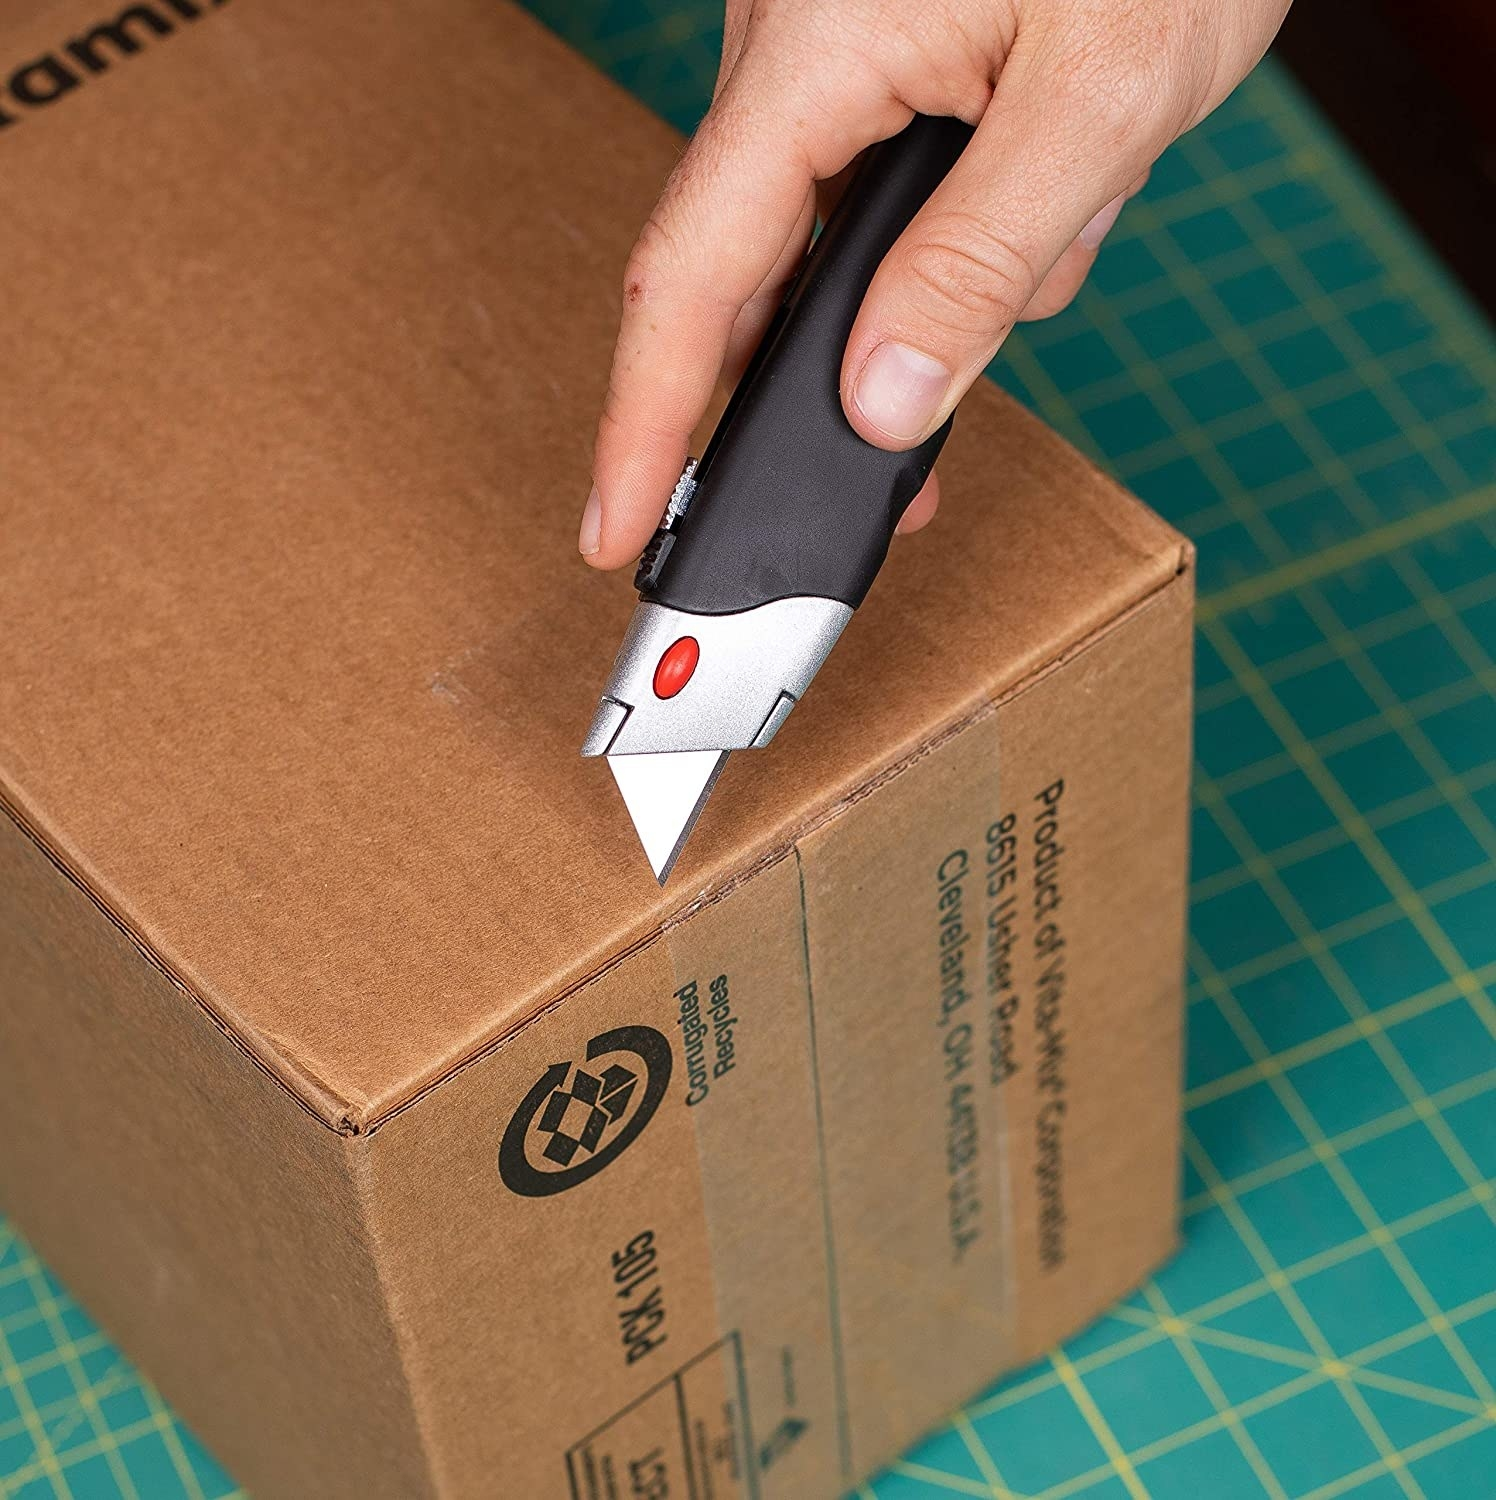 A box cutter with the blade extended about to cut some cardboard boxes